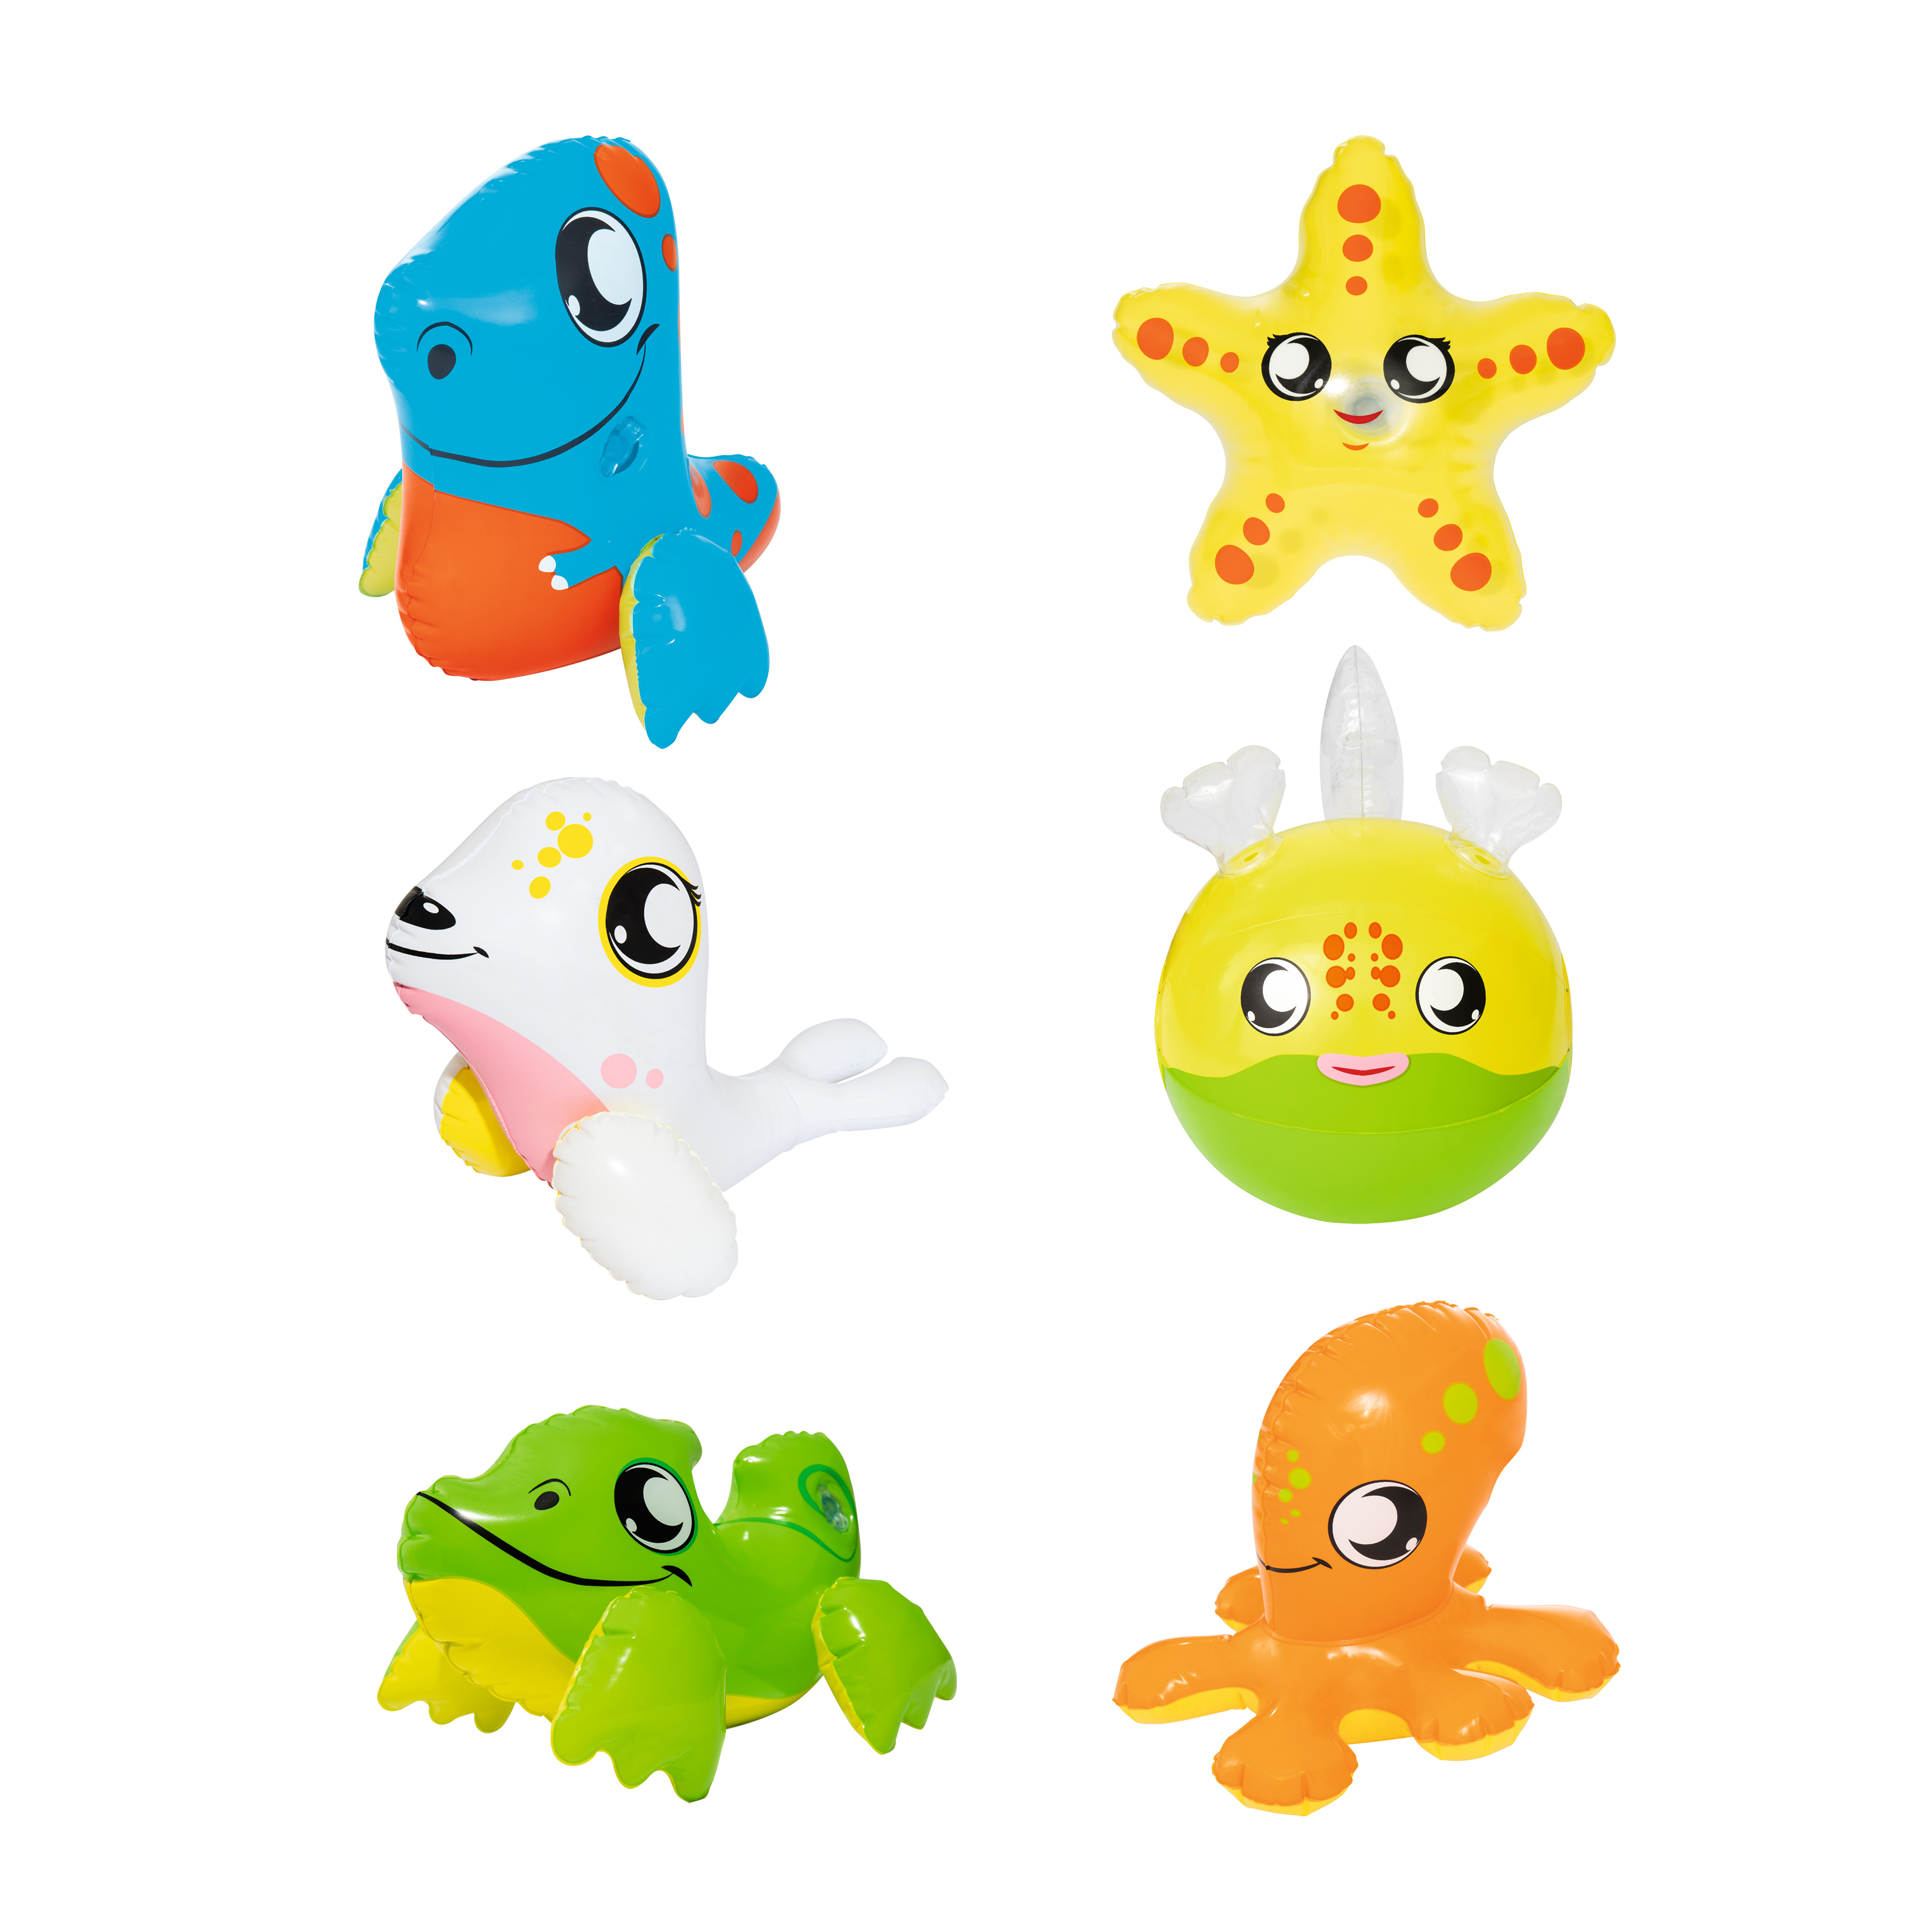 Inflatable Toy 30 Cm, 6 Kinds Of Animal, Bestway, Item No. 34030